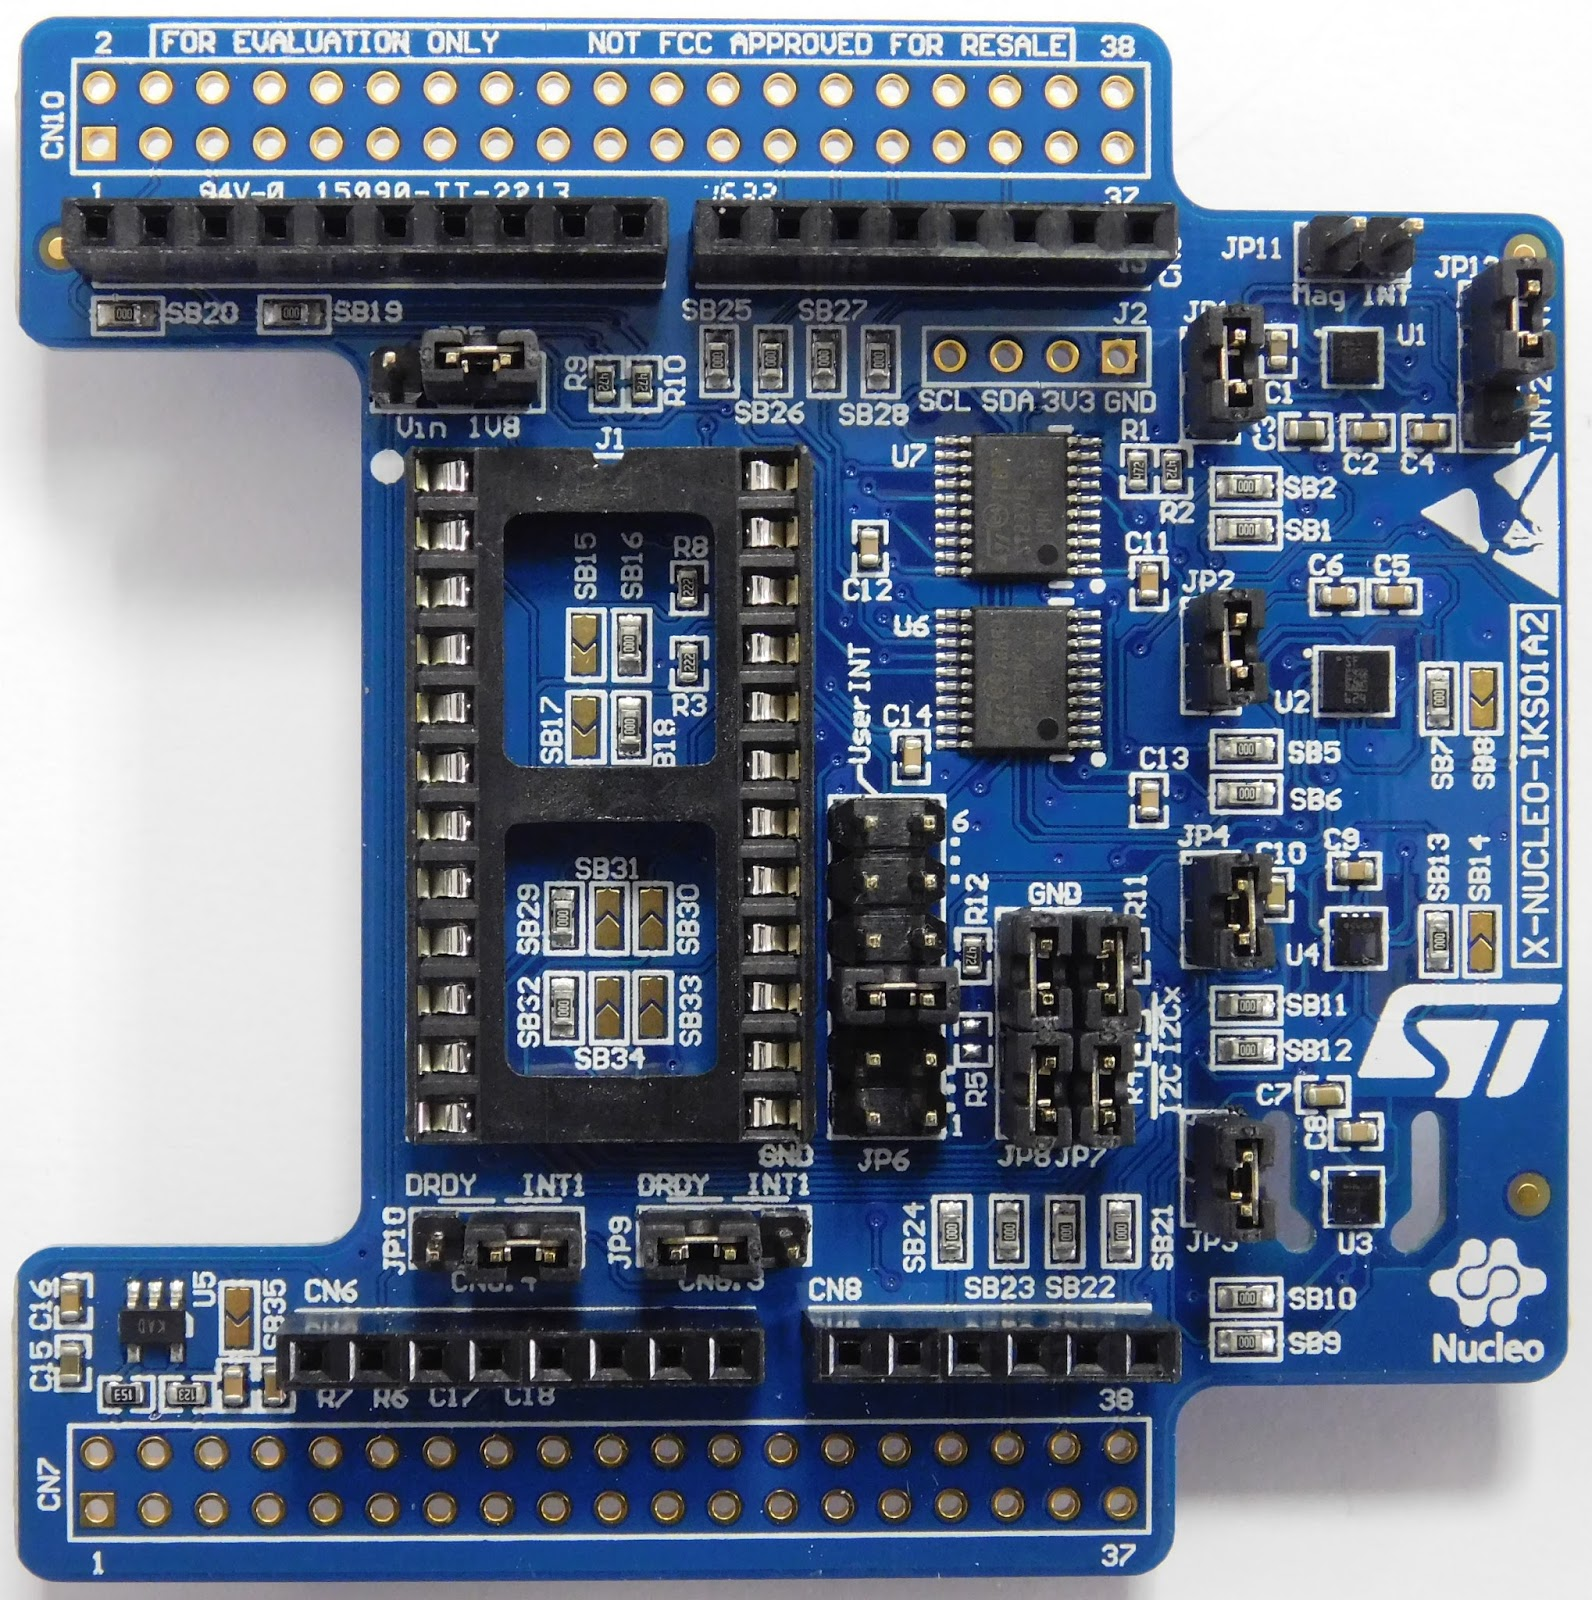 DutchMcGyver's Multiverse: The STM32 LoRa Discovery kit: adding sensors